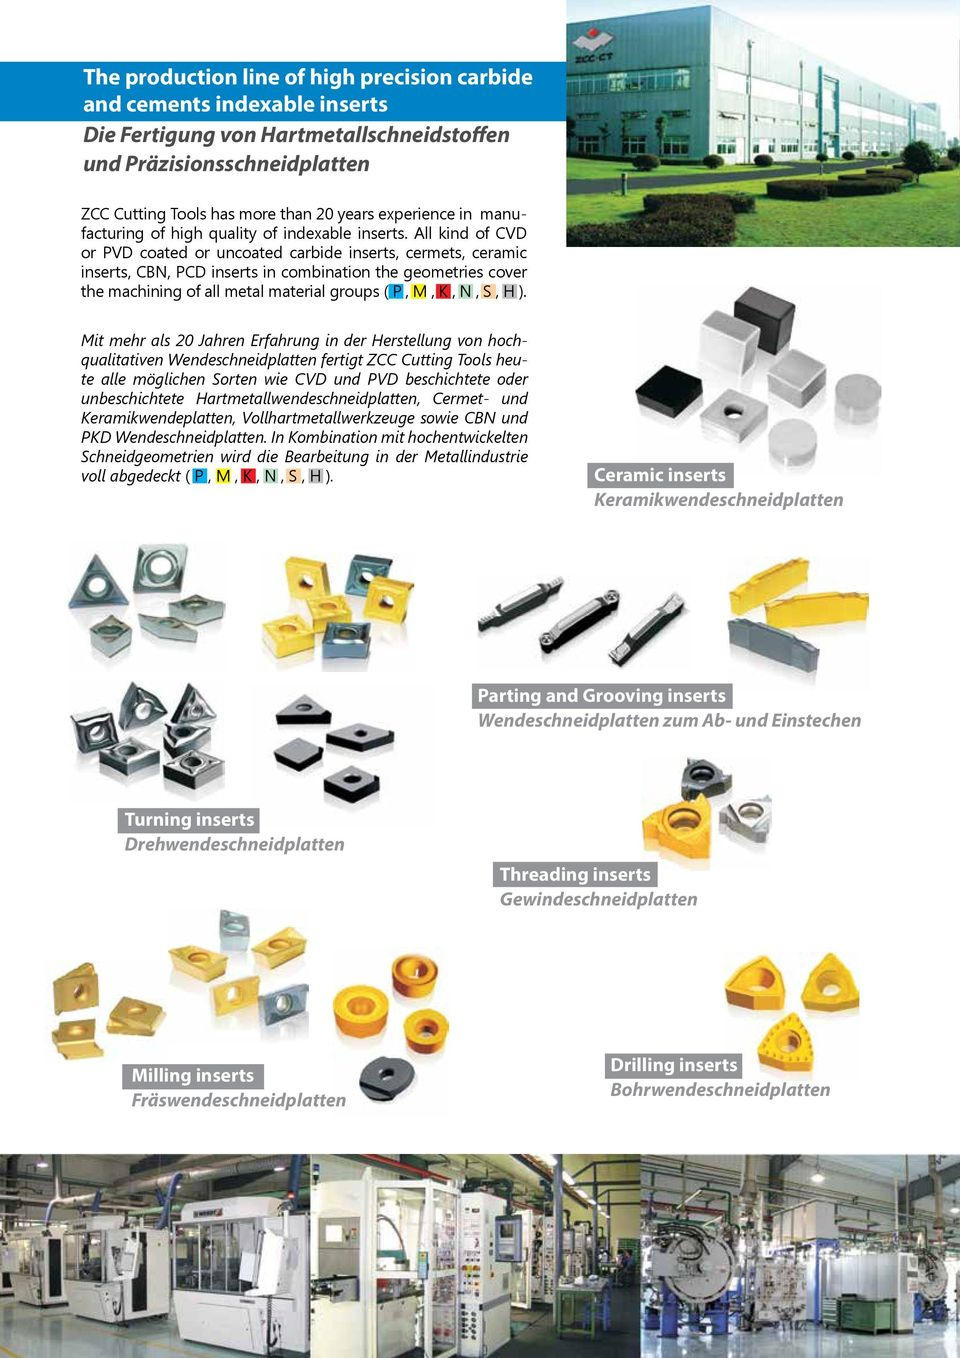 All kind of CVD or PVD coated or uncoated carbide inserts, cermets, ceramic inserts, CBN, PCD inserts in combination the geometries cover the machining of all metal material groups ( P, M, K, N, S, H